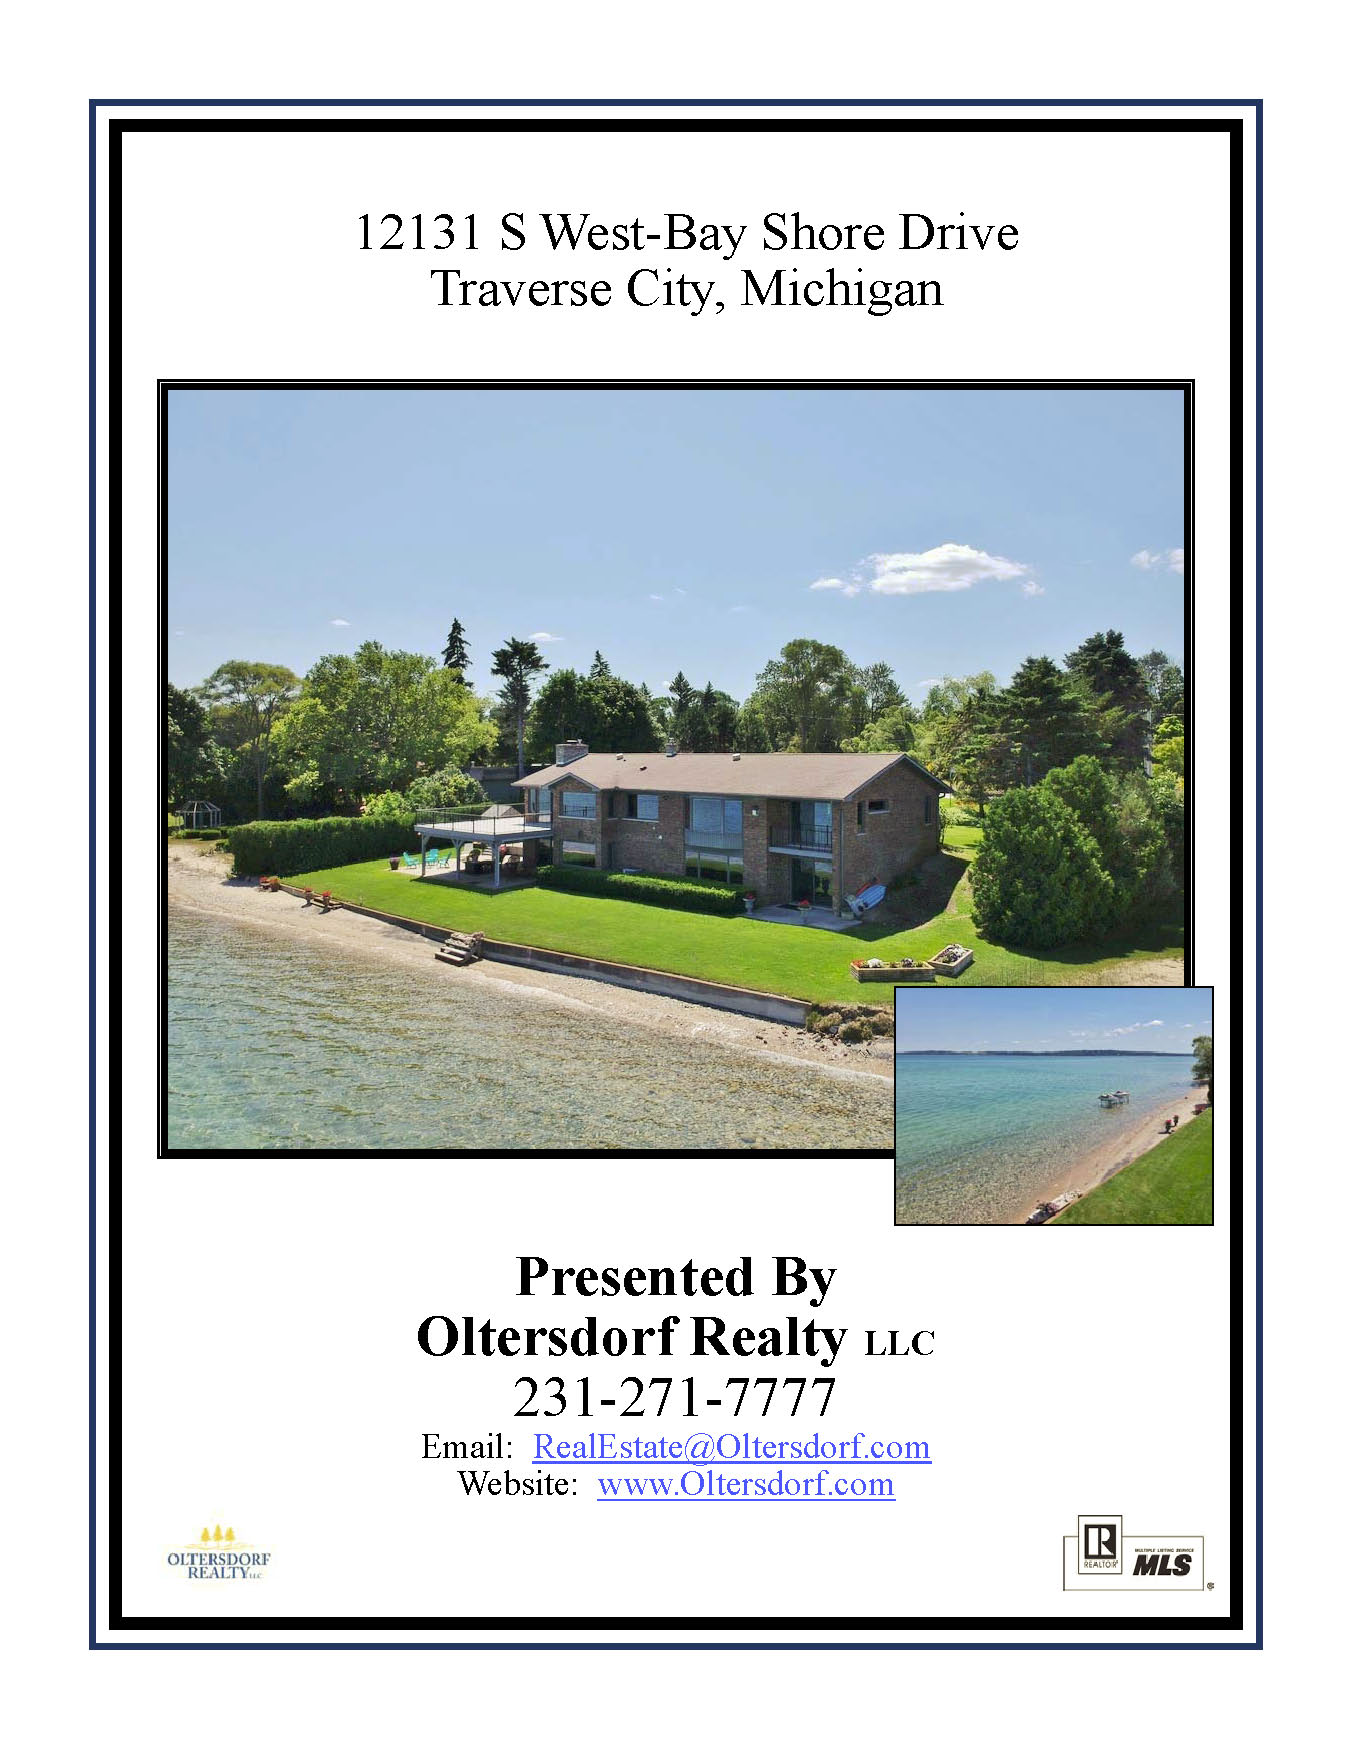 12131 S West-Bay Shore Drive Marketing Packet - FOR SALE by Oltersdorf Realty LLC (1).jpg